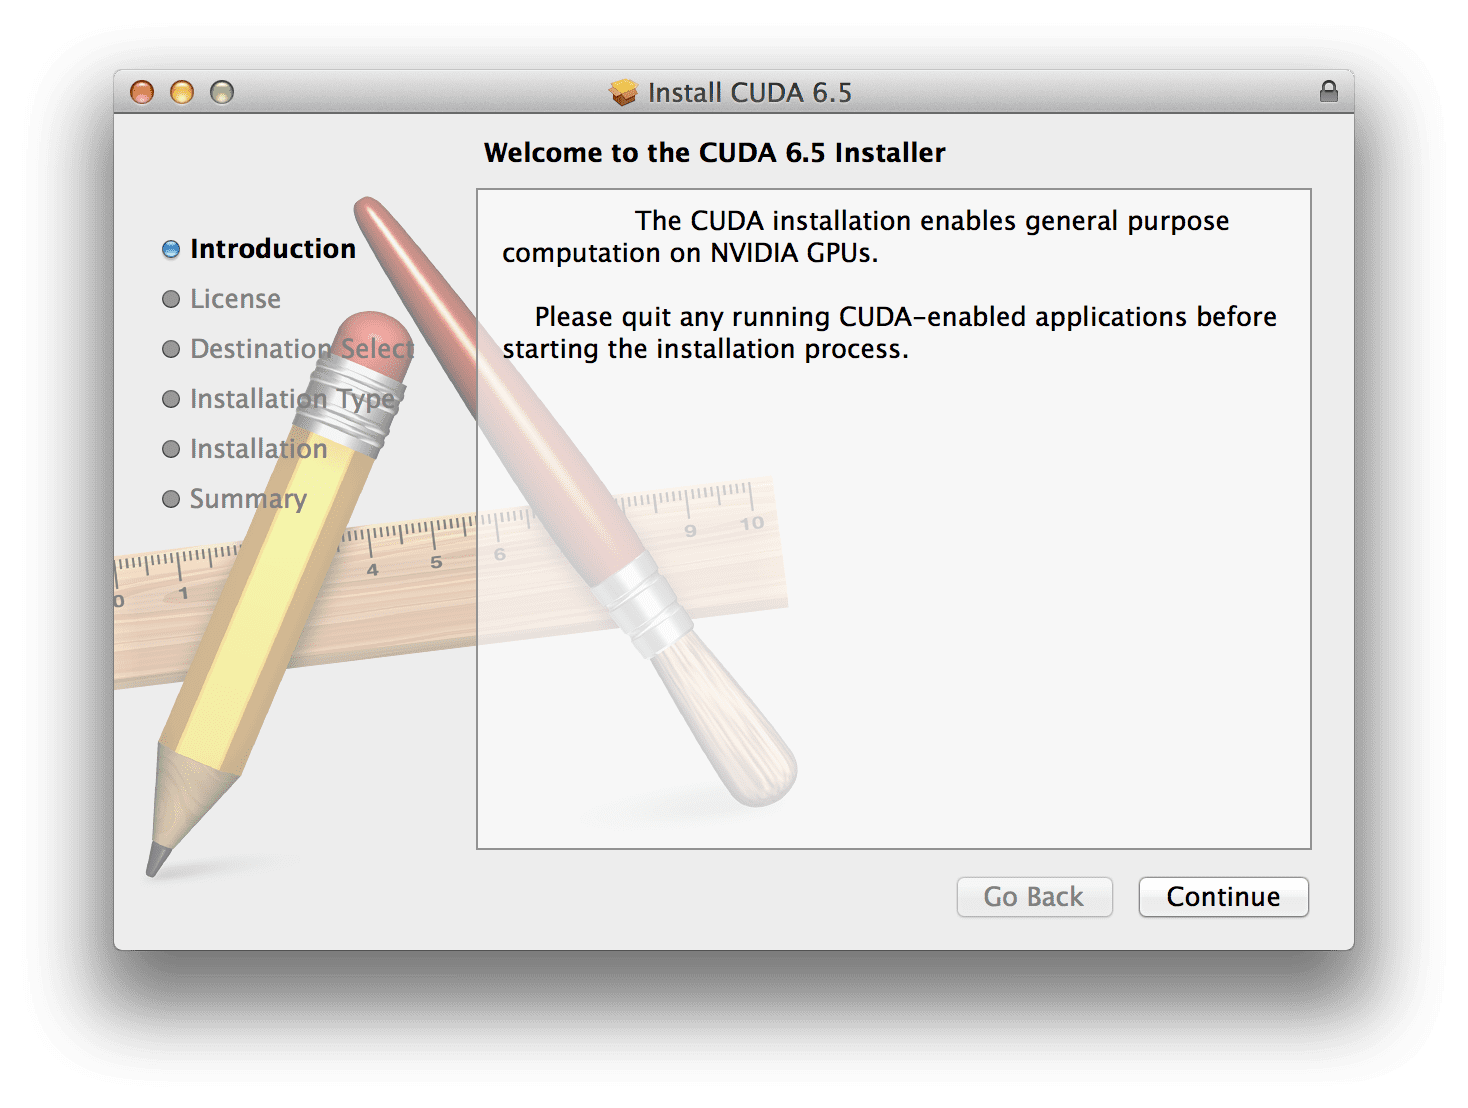 Installing the CUDA Toolkit